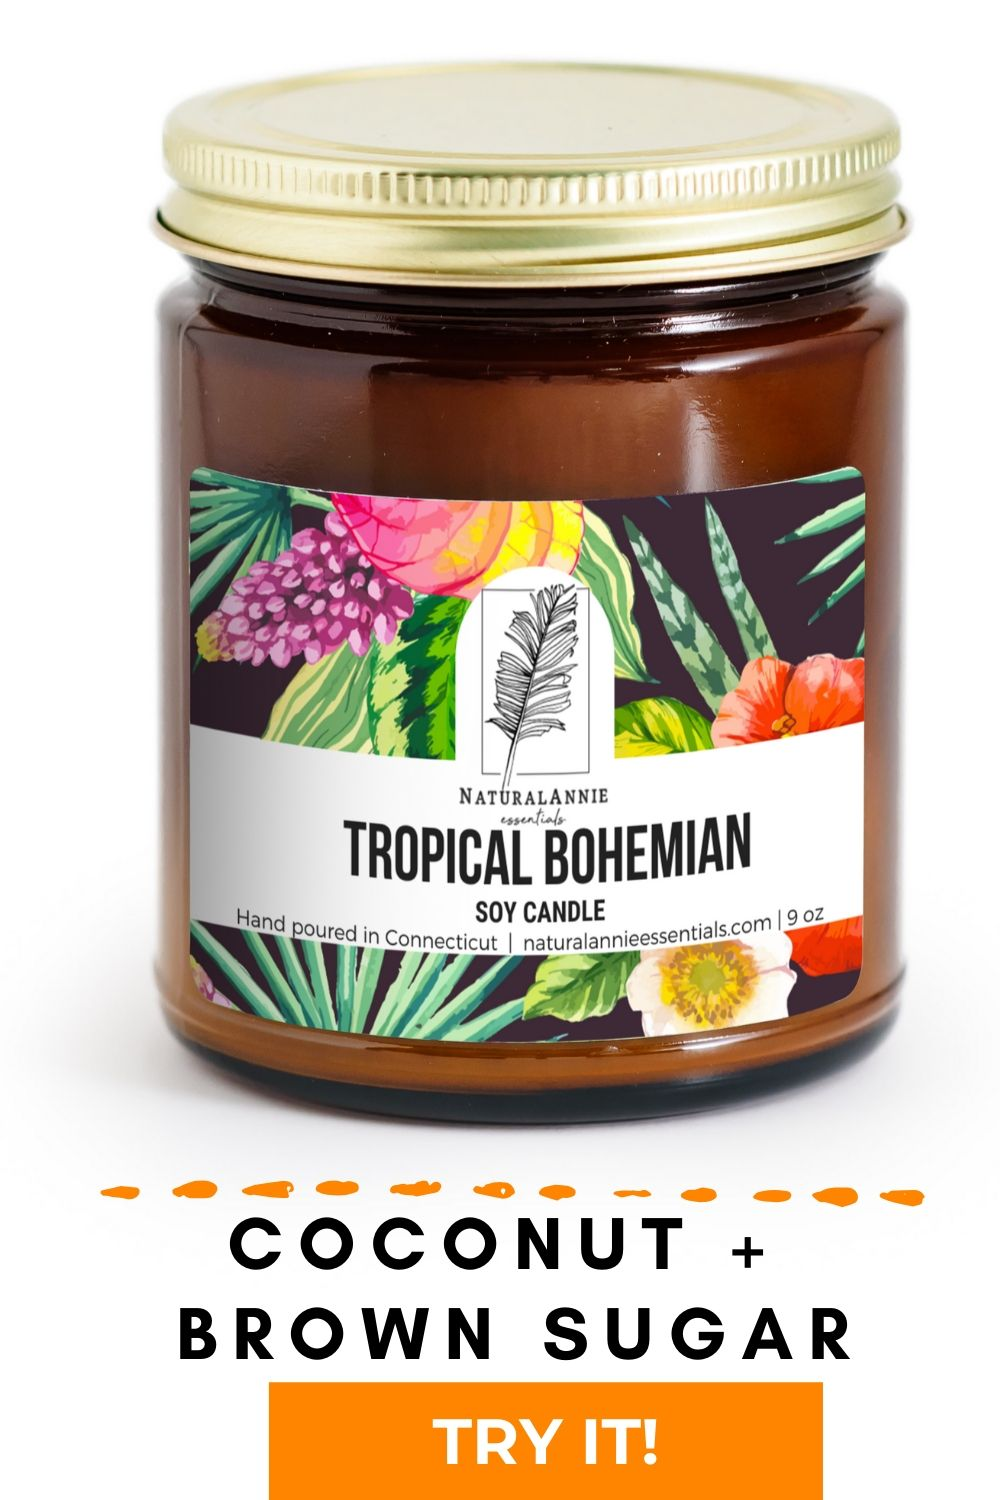 NATURAL CLEAN BURNING COCONUT BROWN SUGAR SOY CANDLE